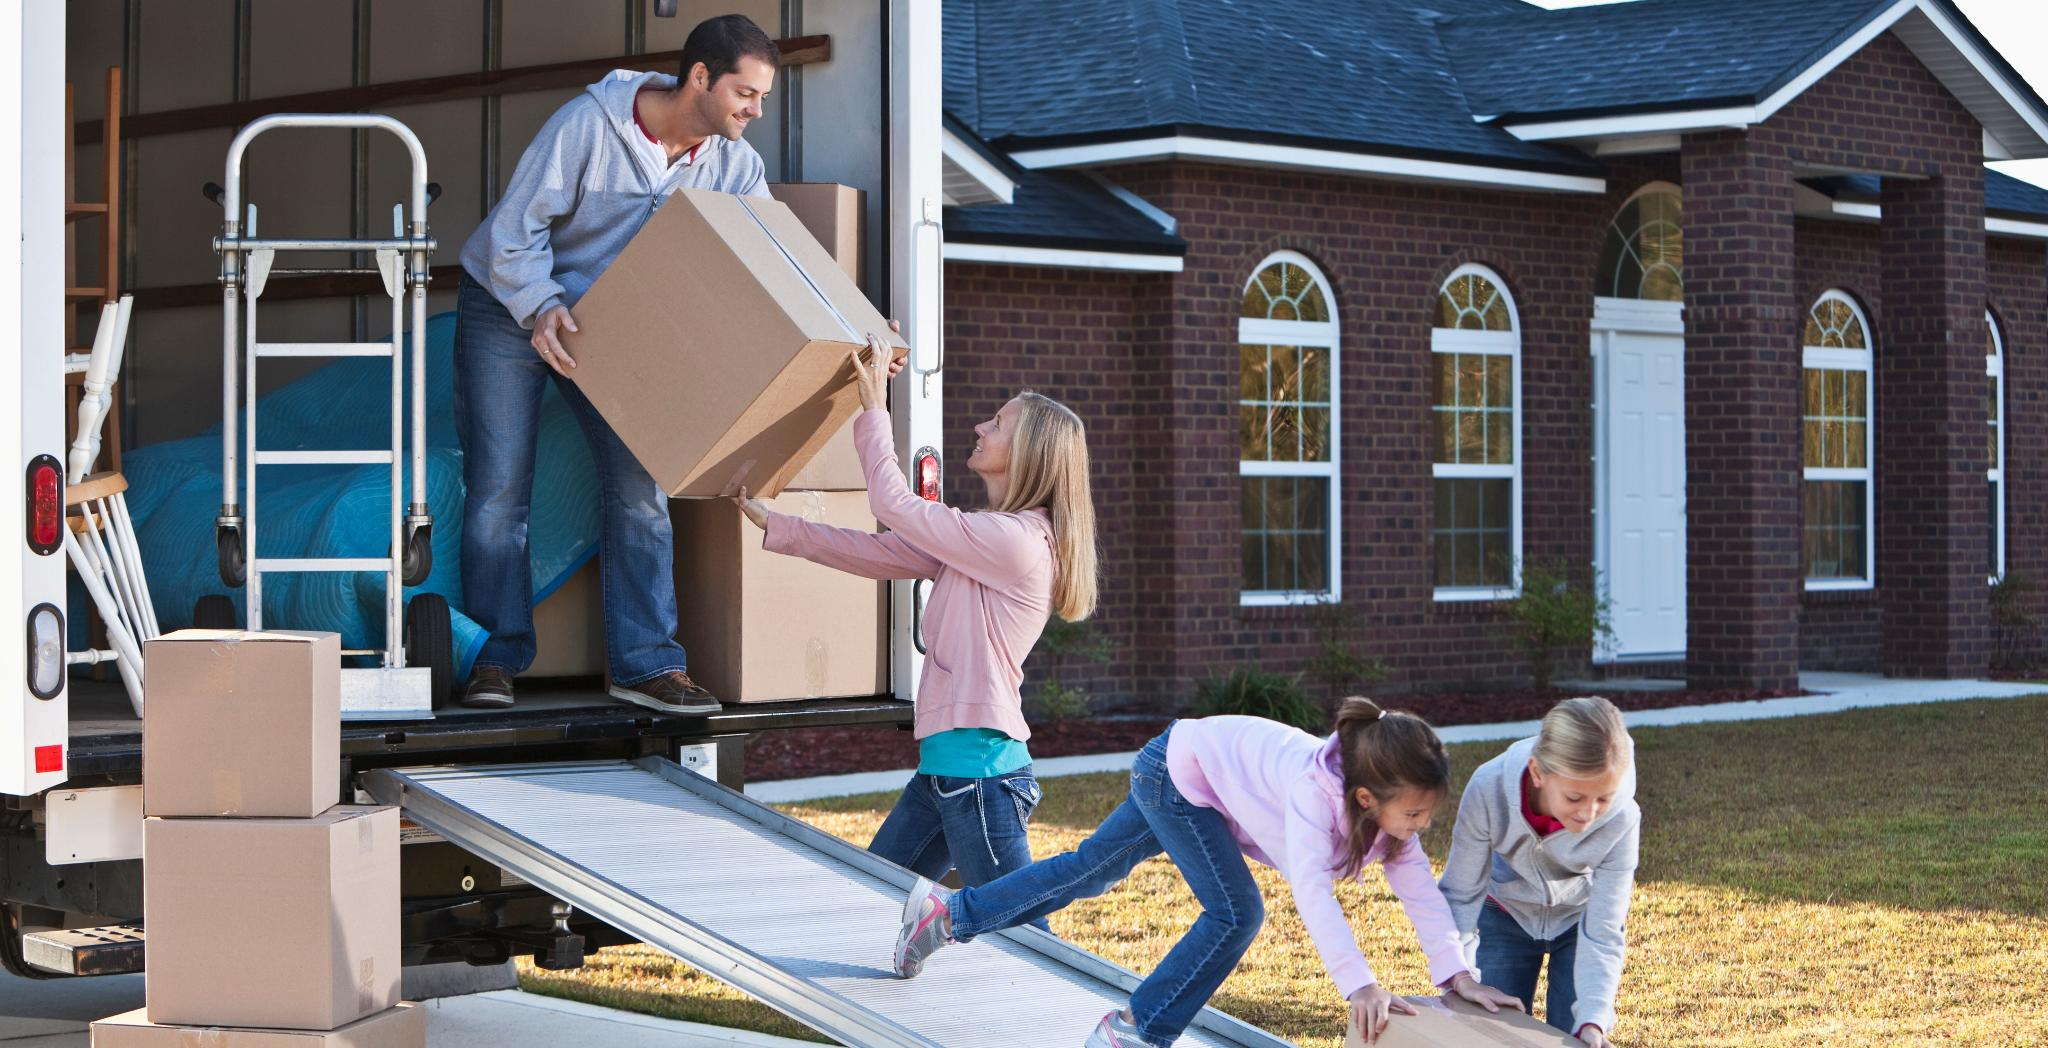 Family loading a moving truck